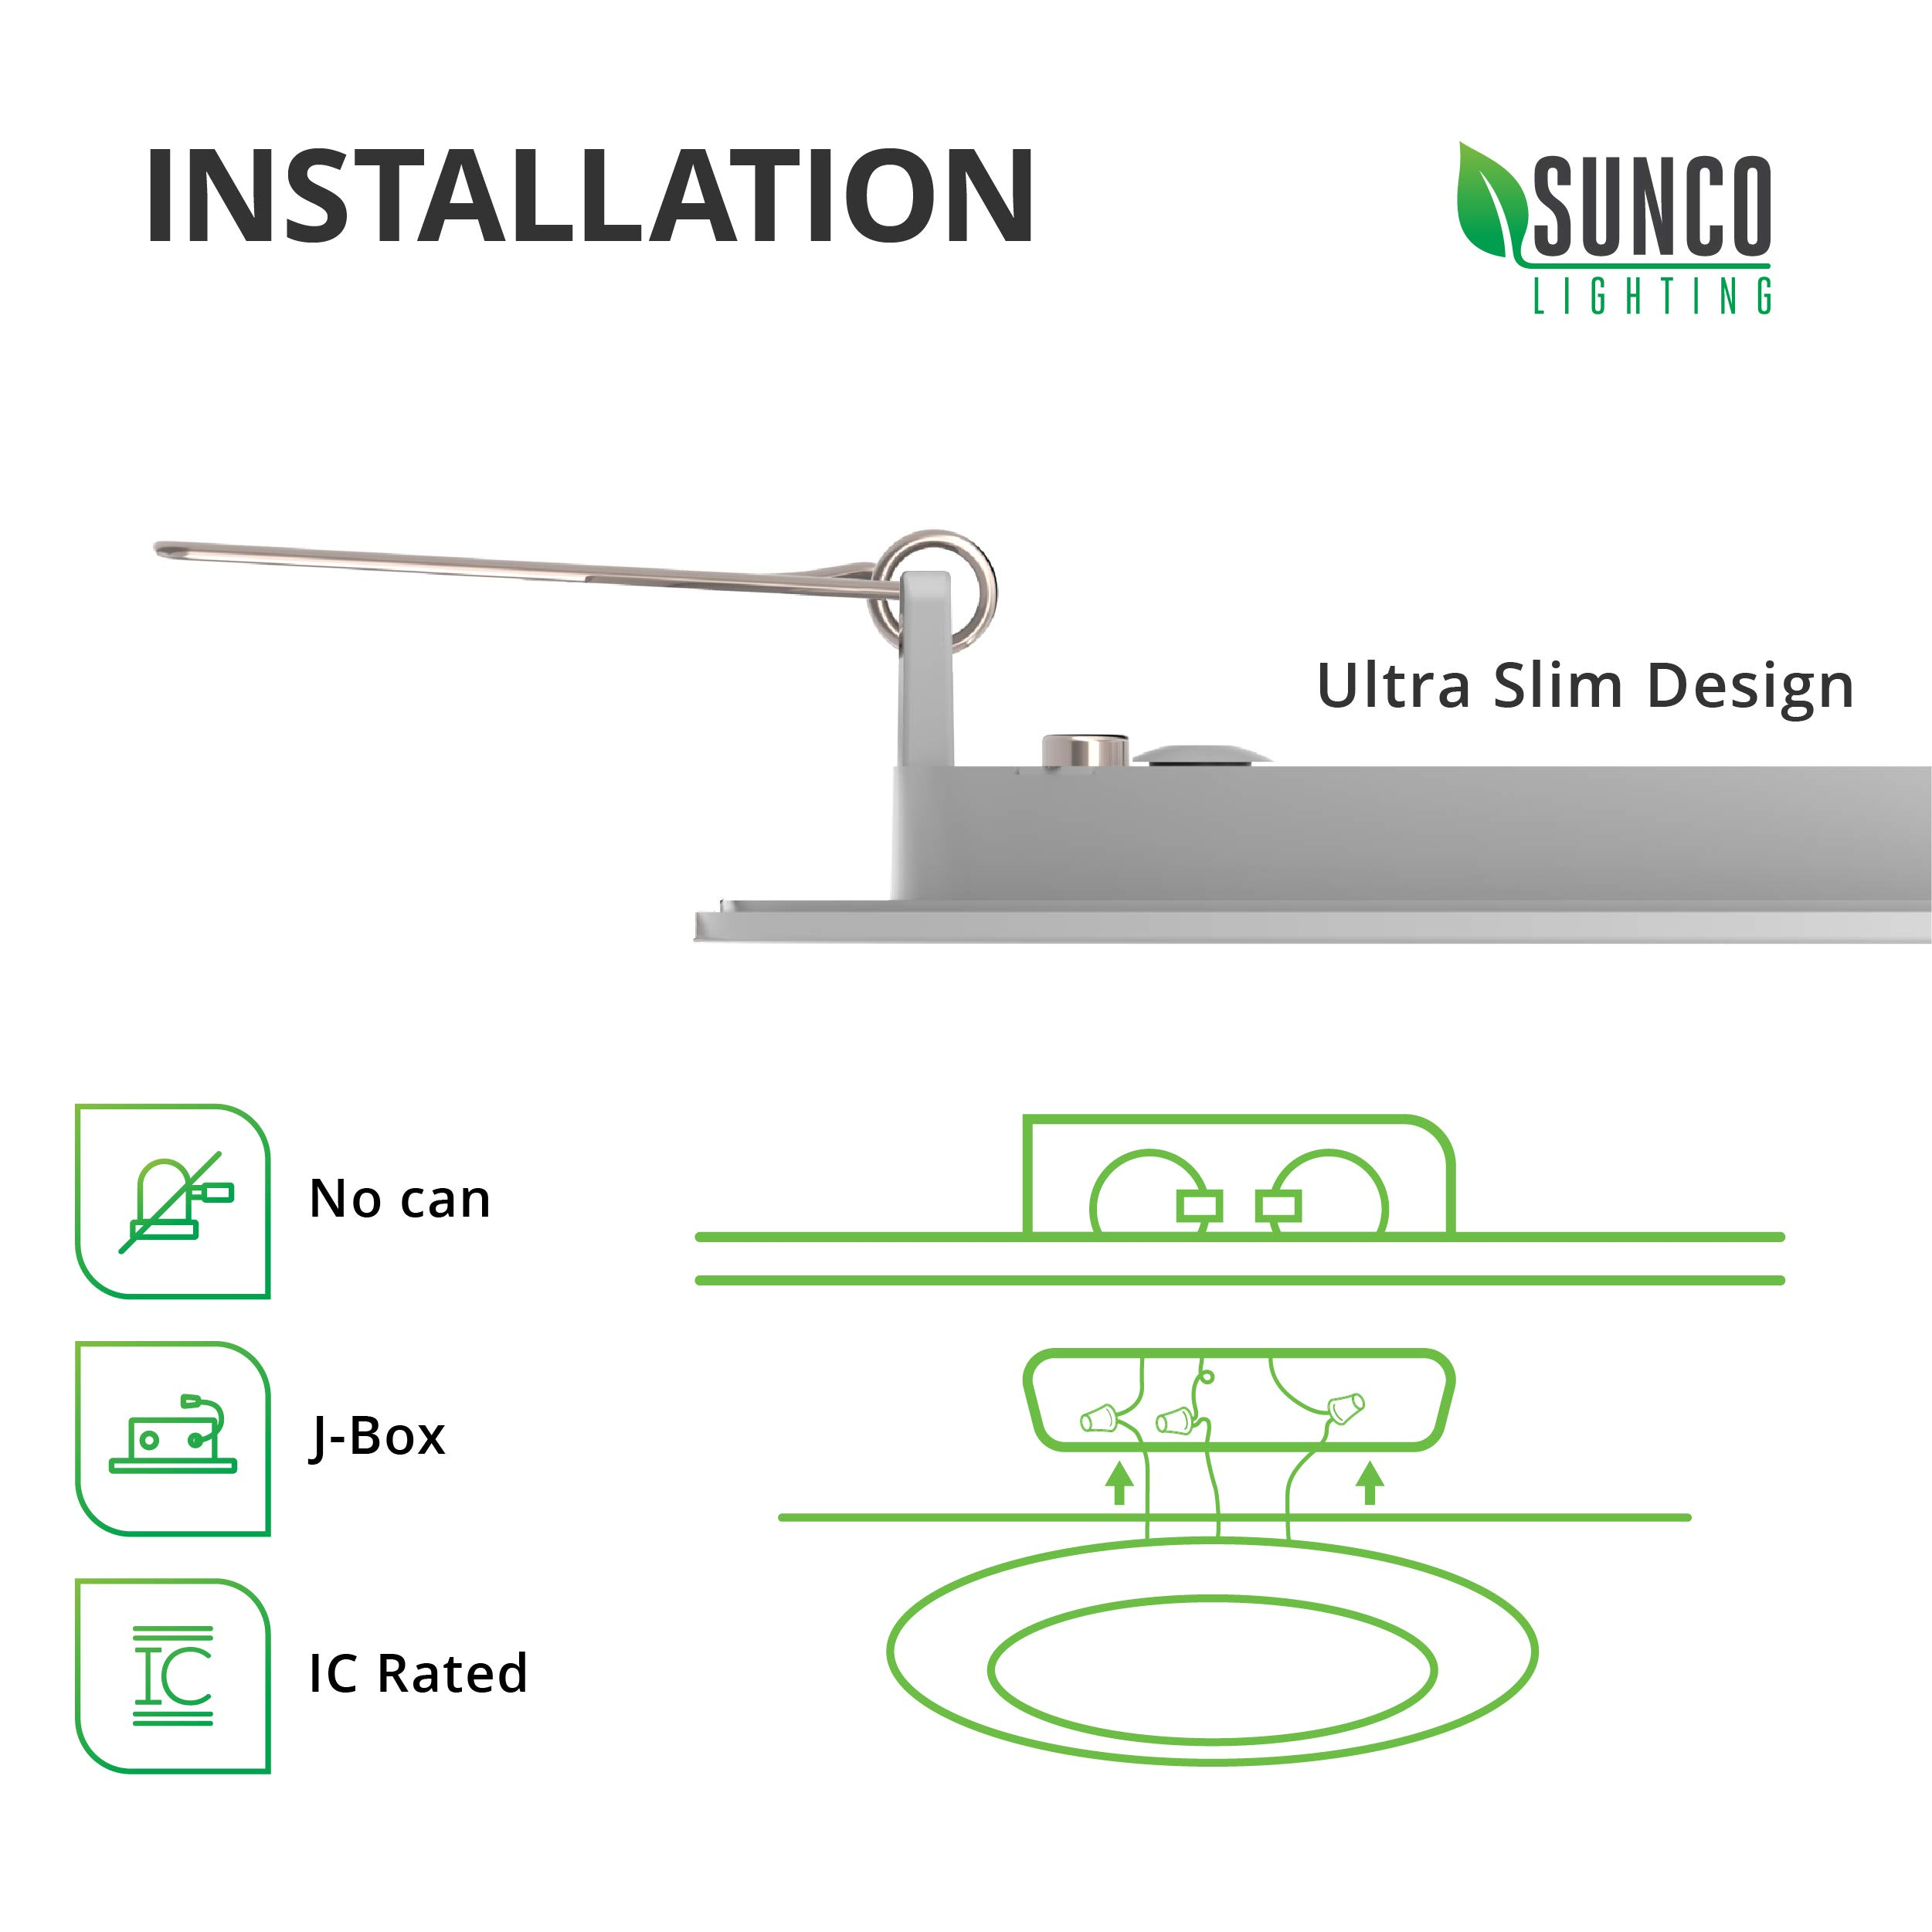 Sunco Lighting 6 Pack 6 Inch Slim LED Downlight with Junction Box, 14W=100W, 850 LM, Dimmable, 3000K Warm White, Recessed Jbox Fixture, Simple Retrofit Installation - ETL & Energy Star by Sunco Lighting (Image #5)